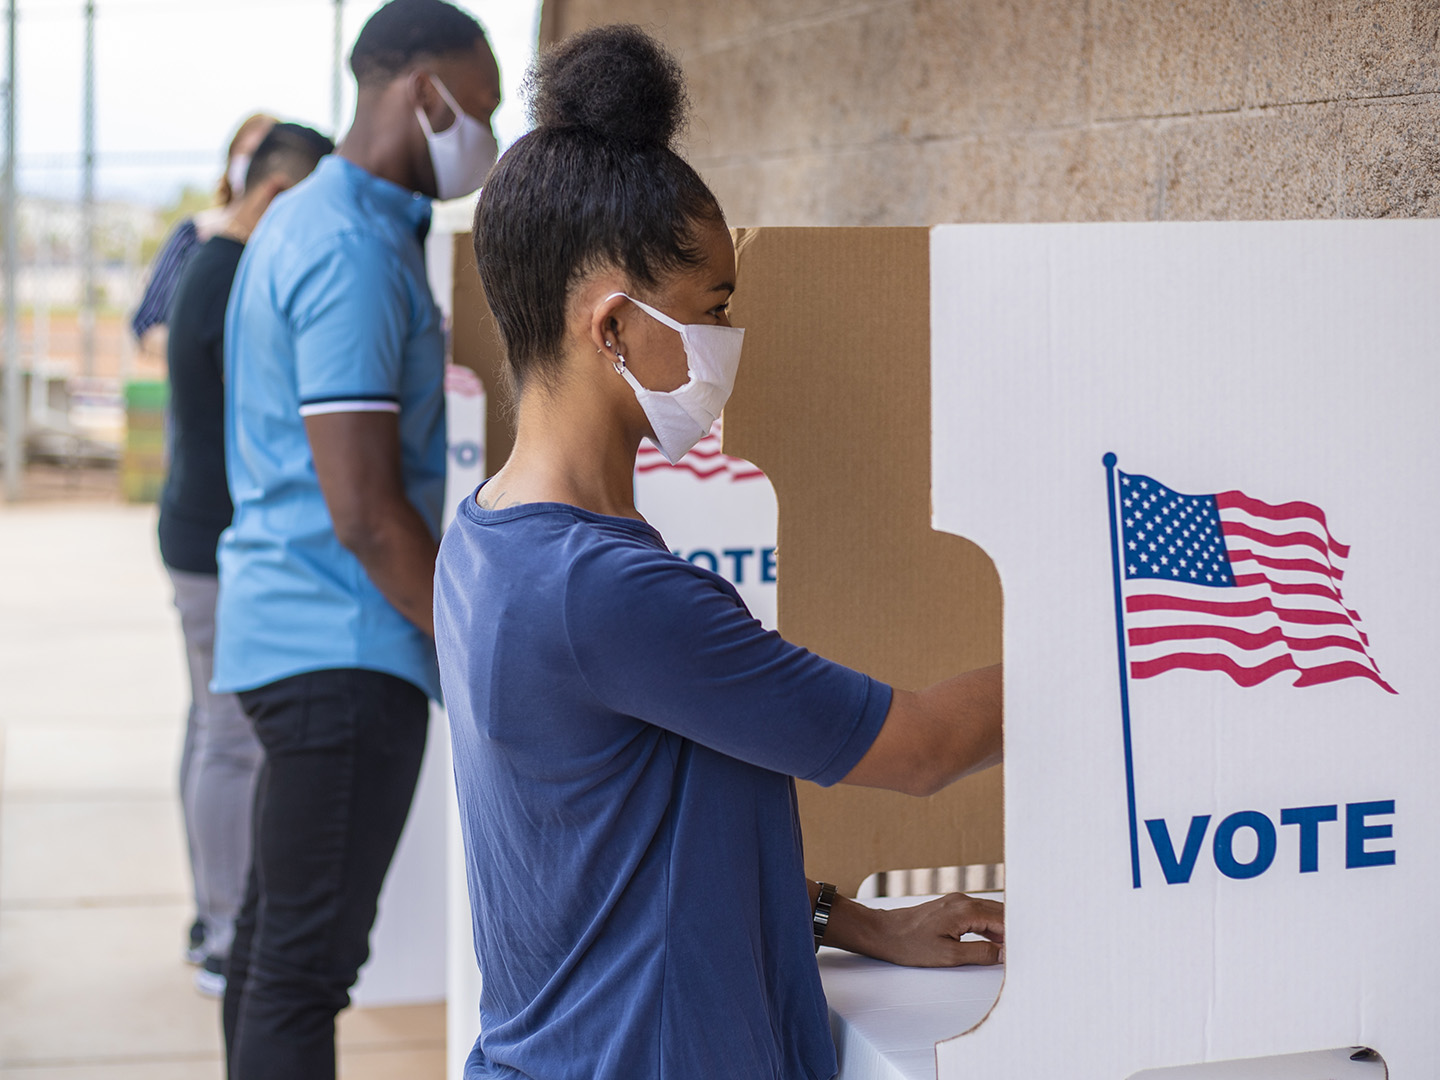 People voting in the United States